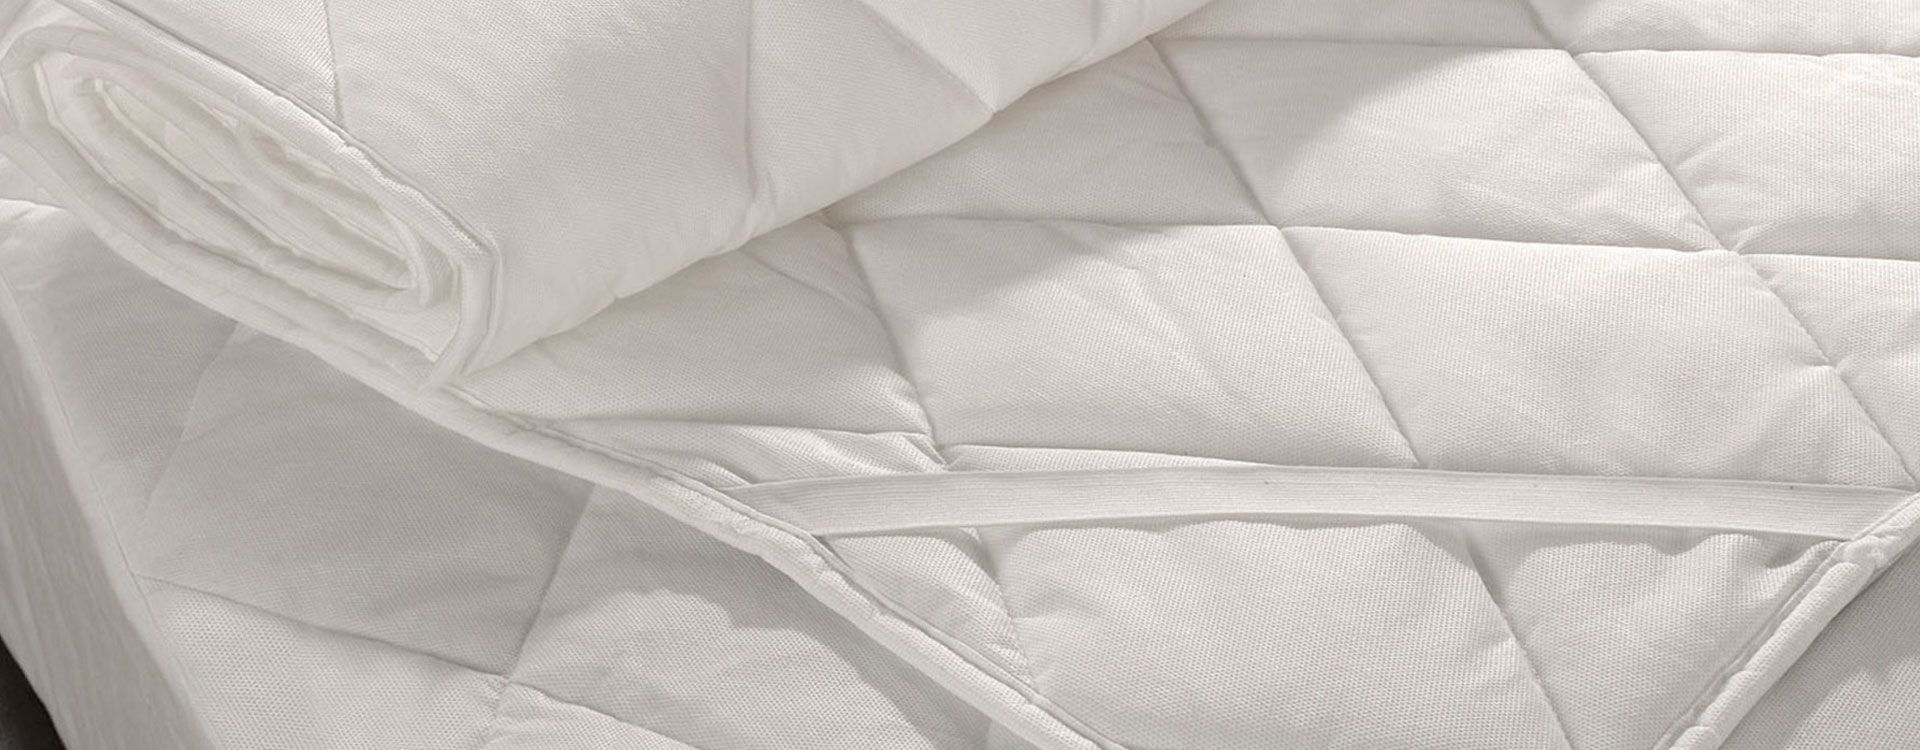 Flame Retardant Mattress Protectors